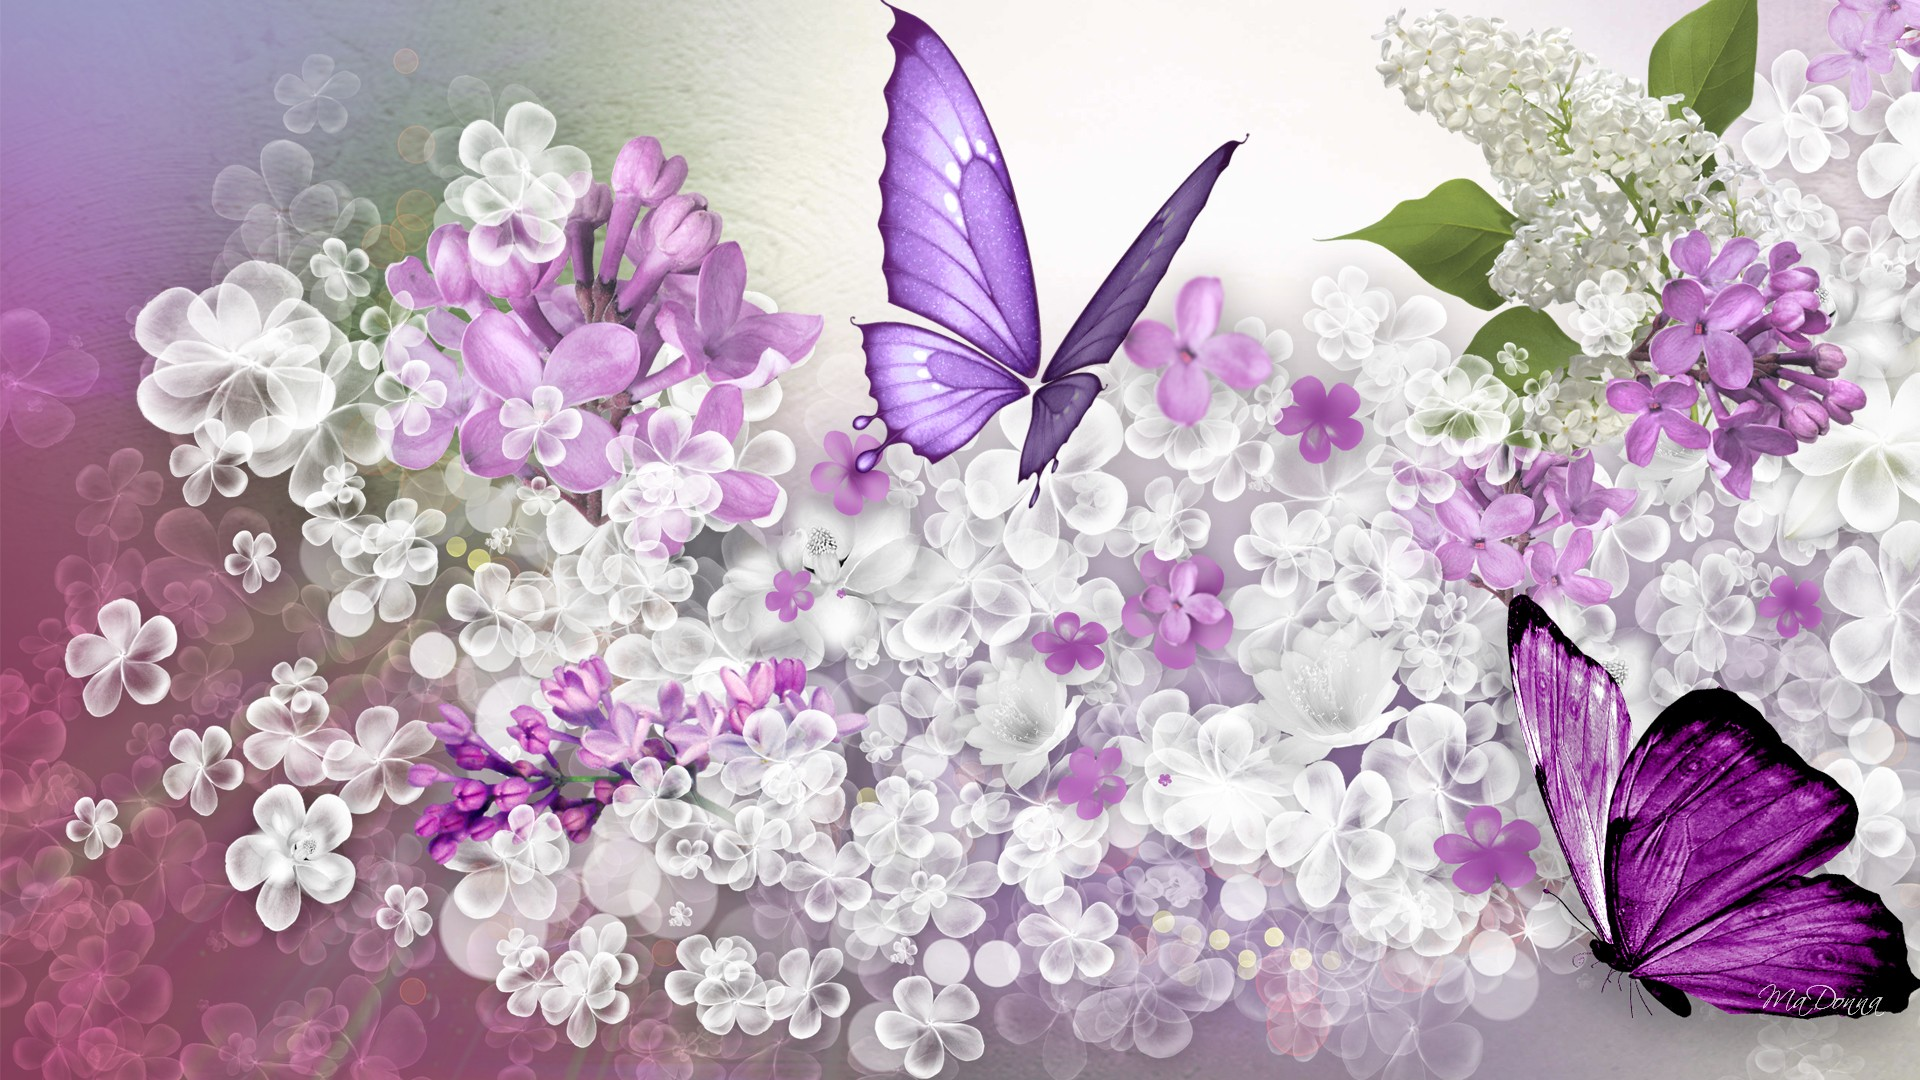 Free lilac wallpaper backgrounds wallpapersafari for Lilac butterfly wallpaper